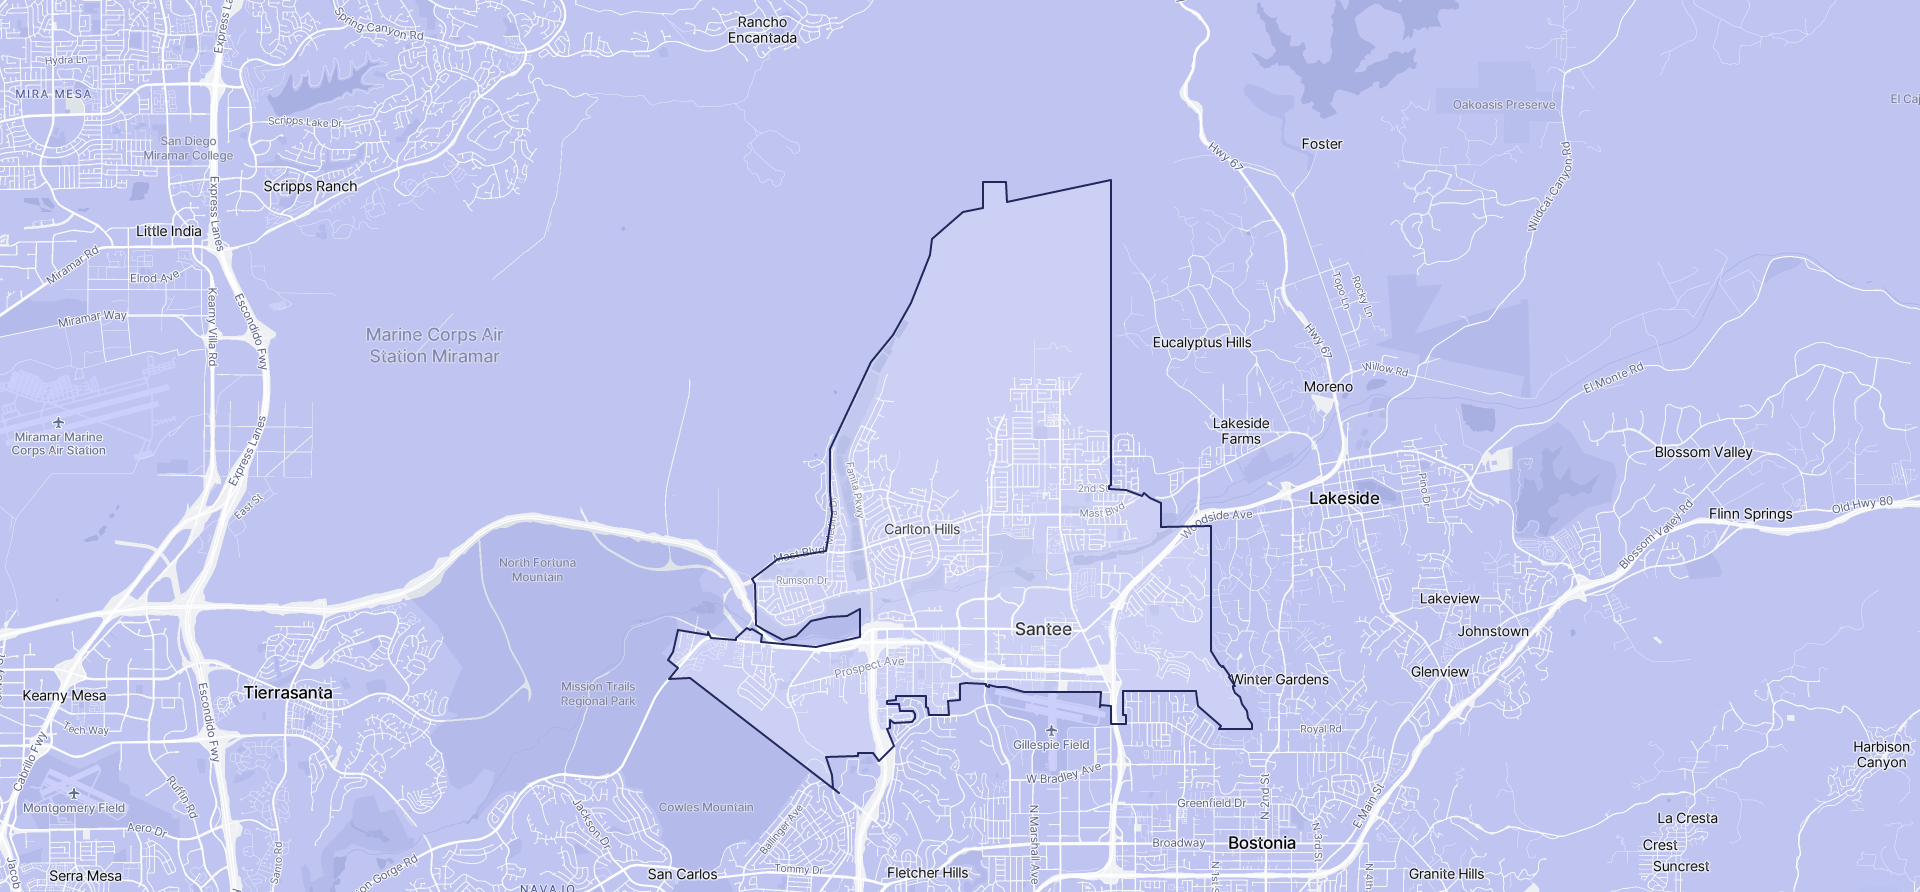 Image of Santee boundaries on a map.